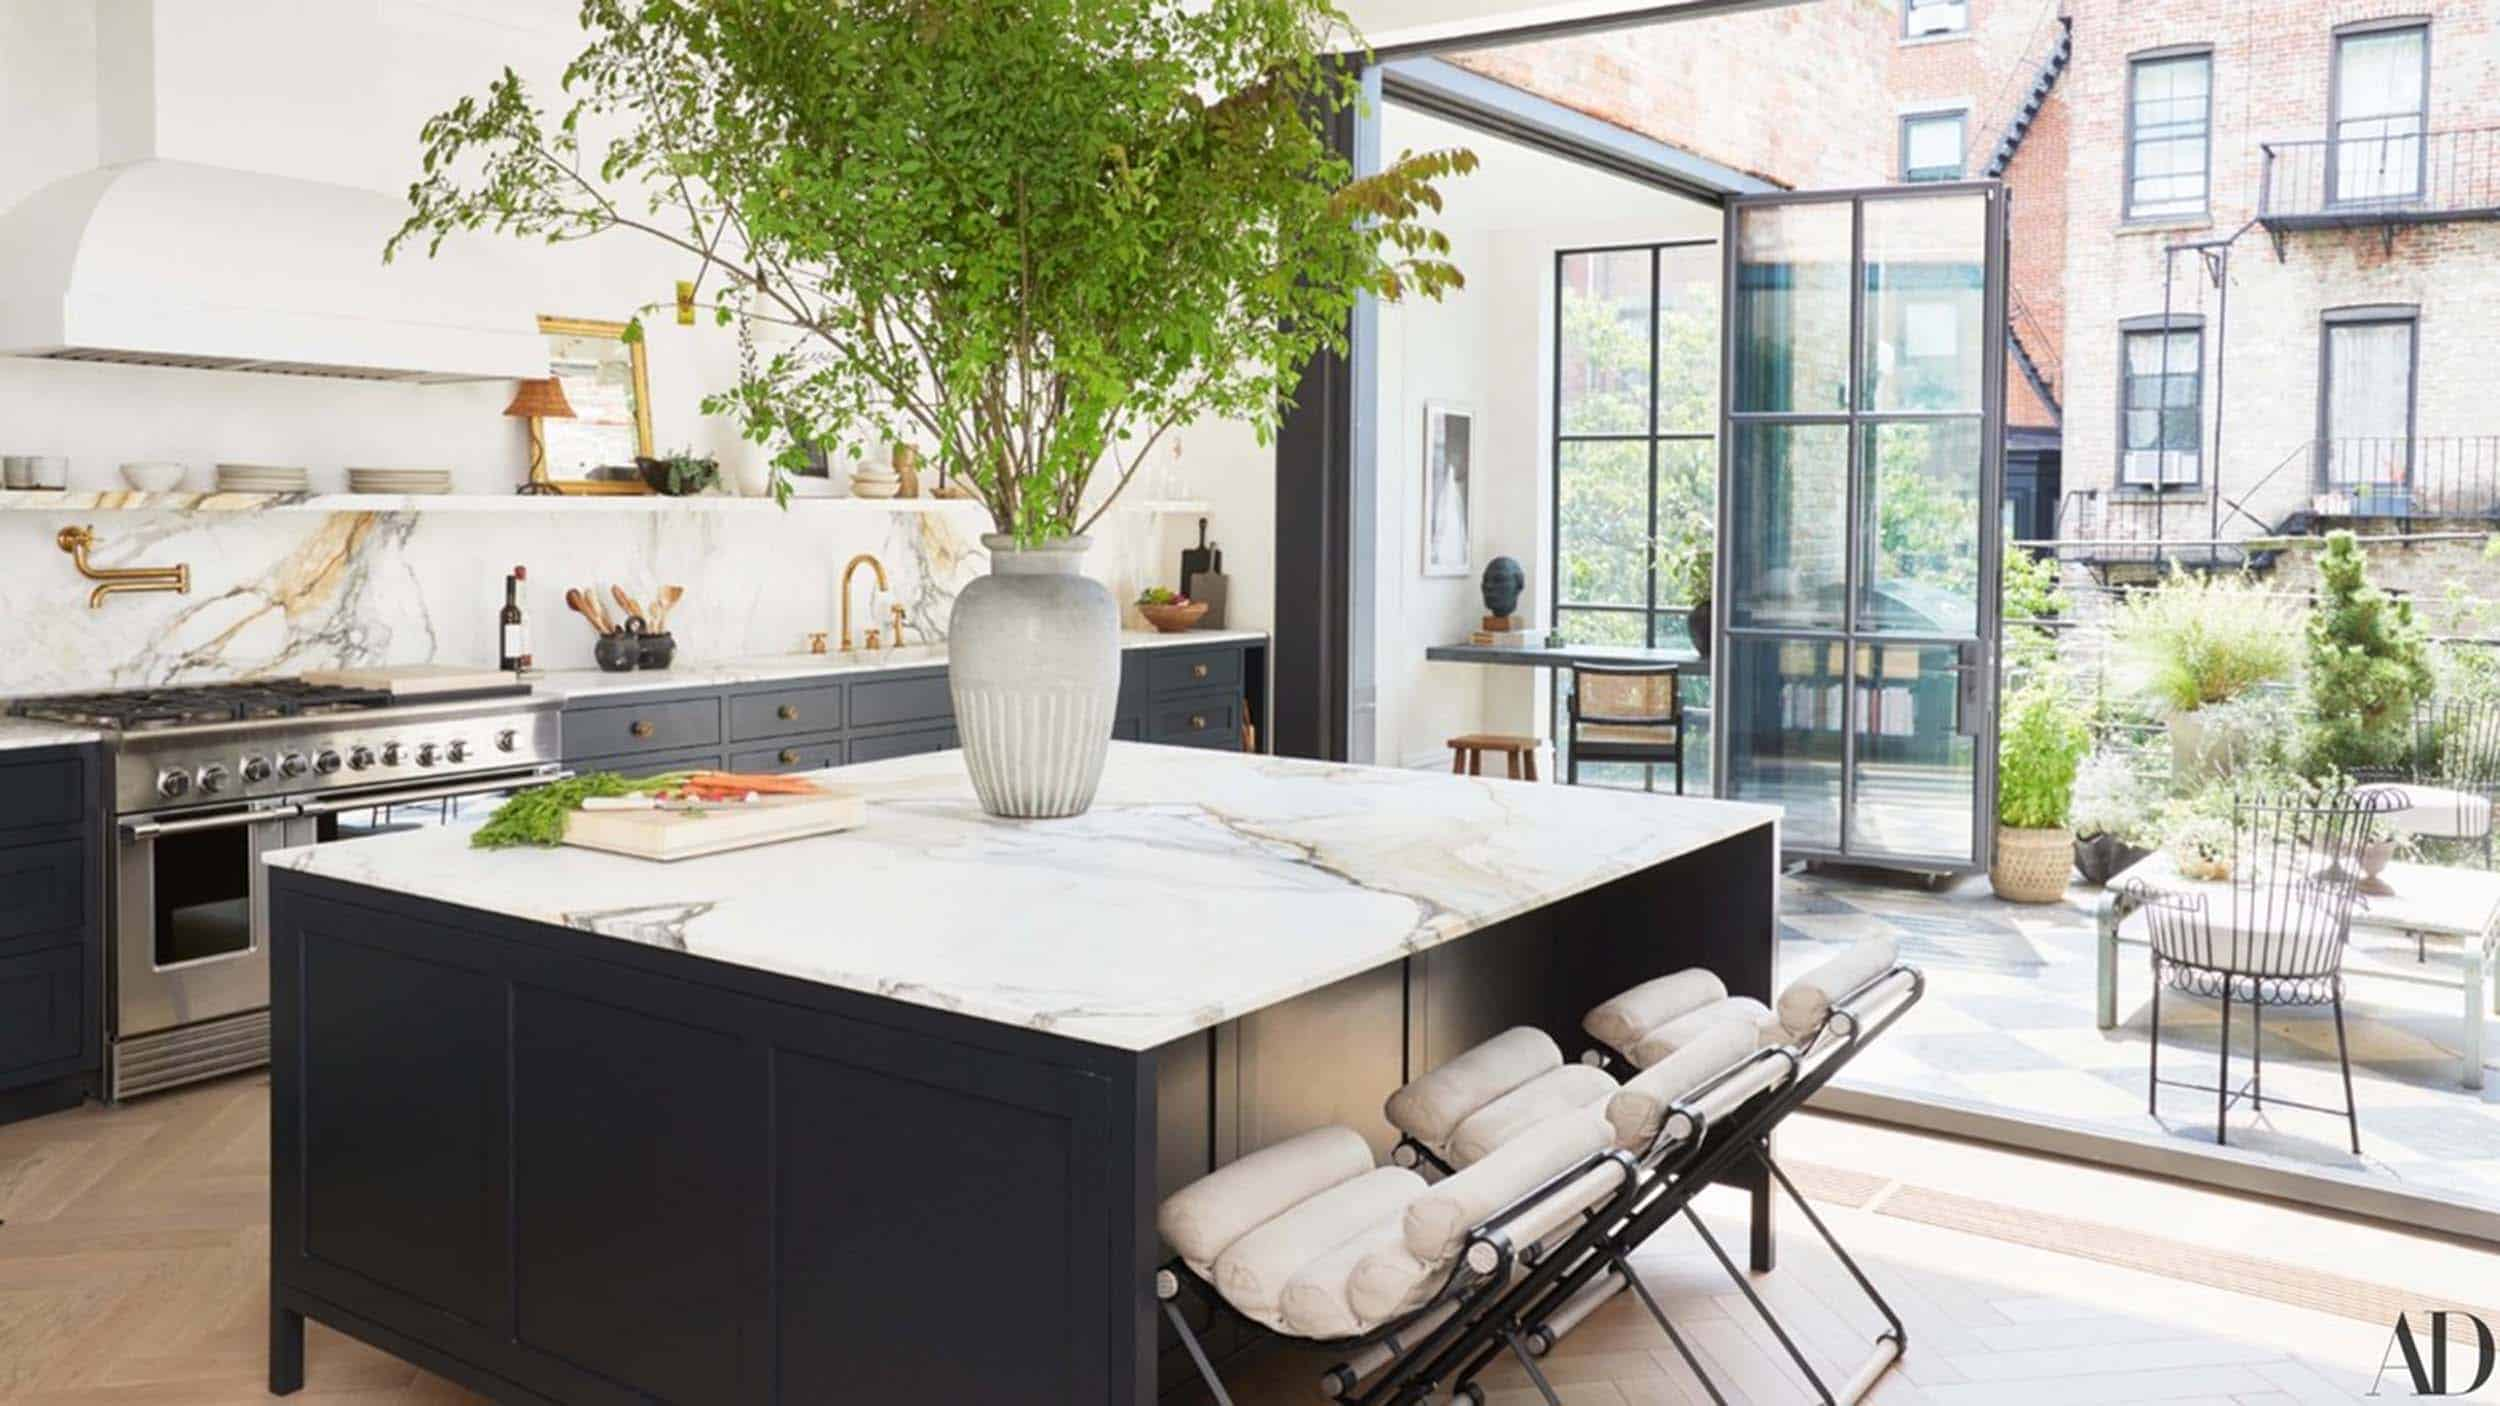 9 Kitchen Trends For 2019 We Re Betting Will Be Huge Emily Henderson